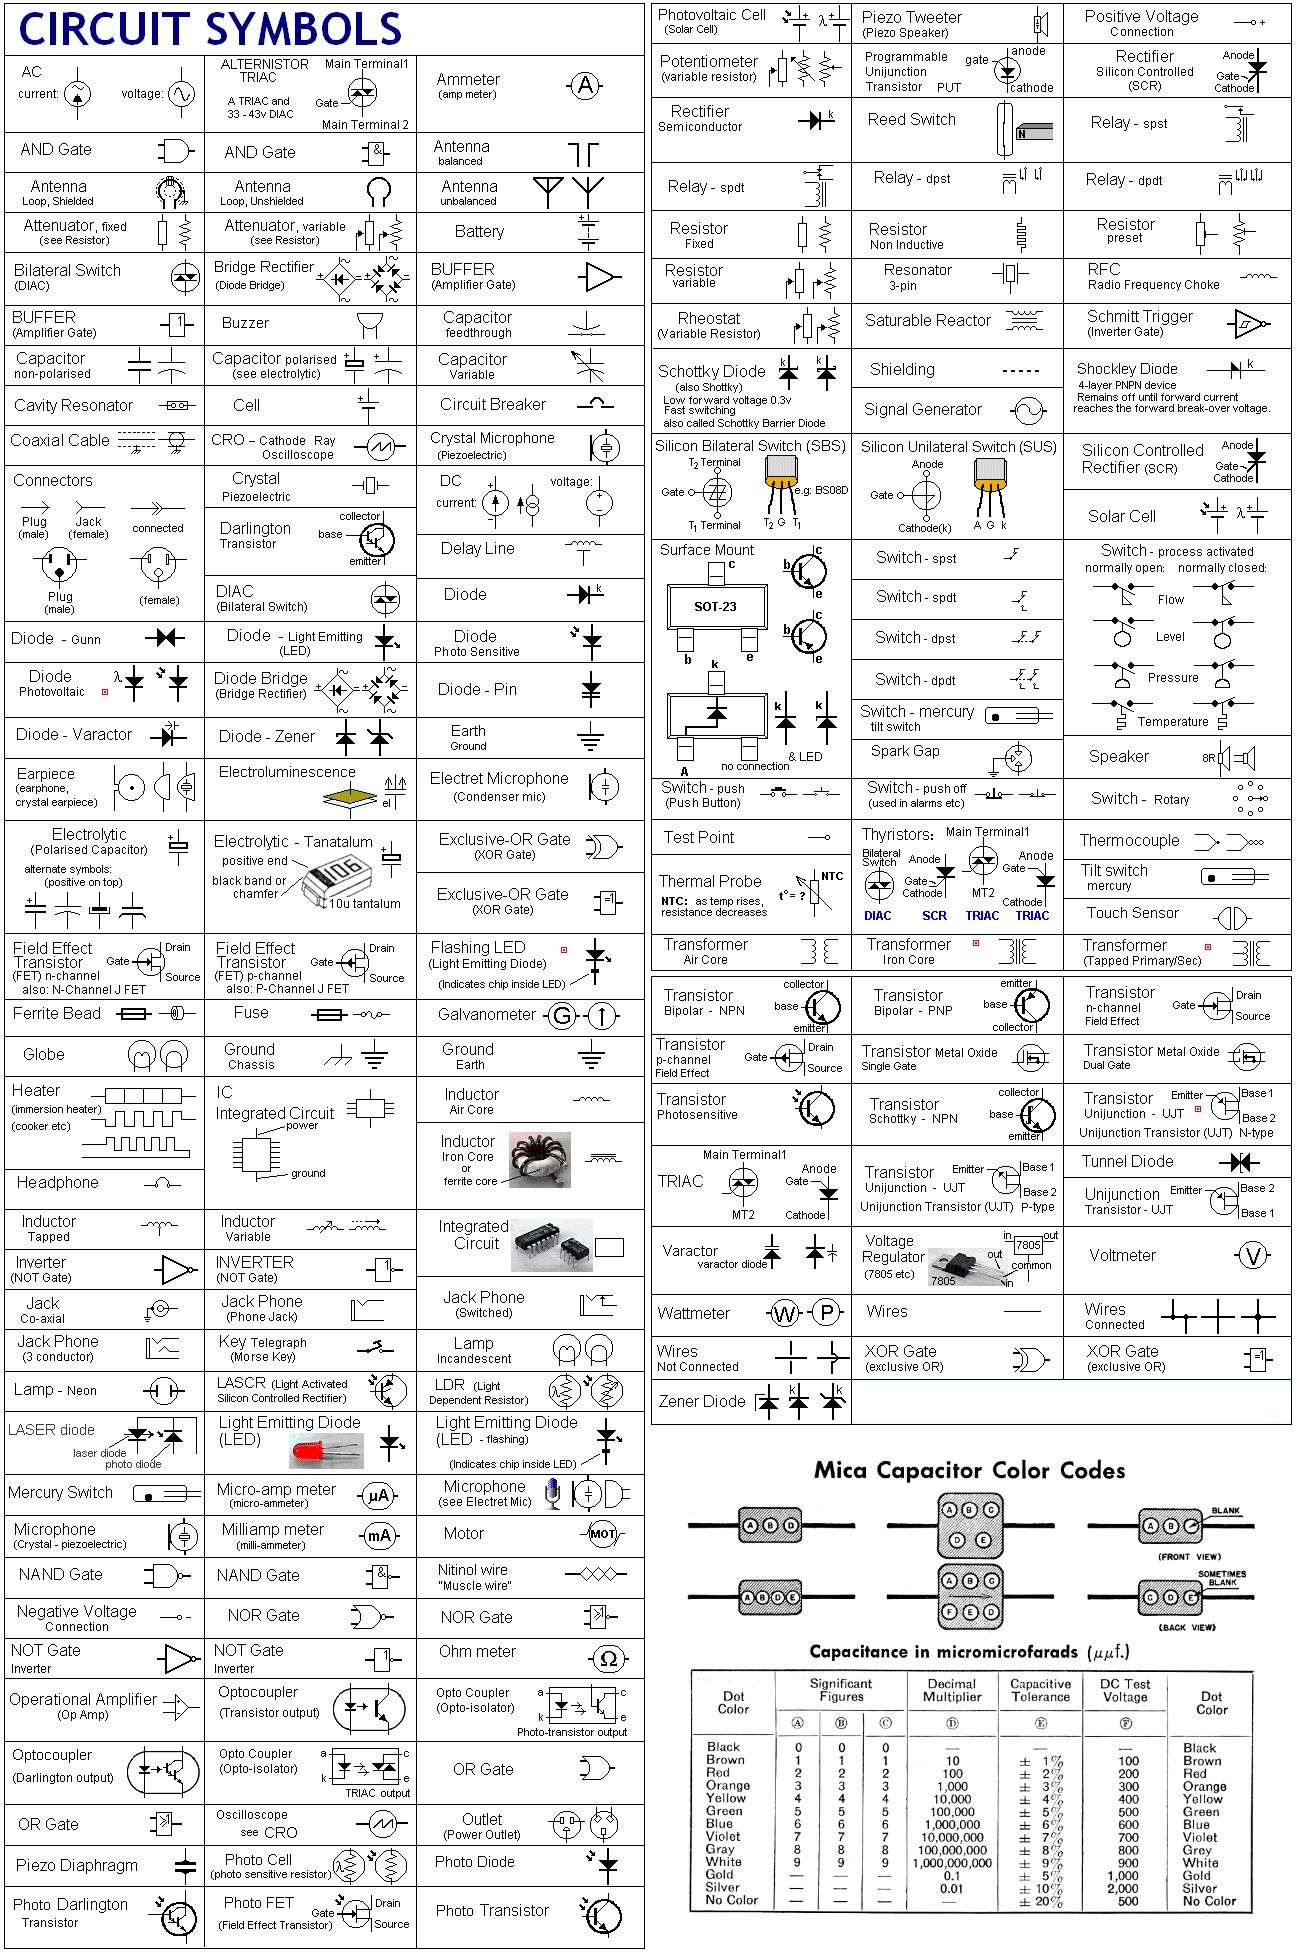 6c64fb84c8e162b28334051891c290f4 schematic symbols chart electric circuit symbols a considerably wiring diagram symbols at creativeand.co